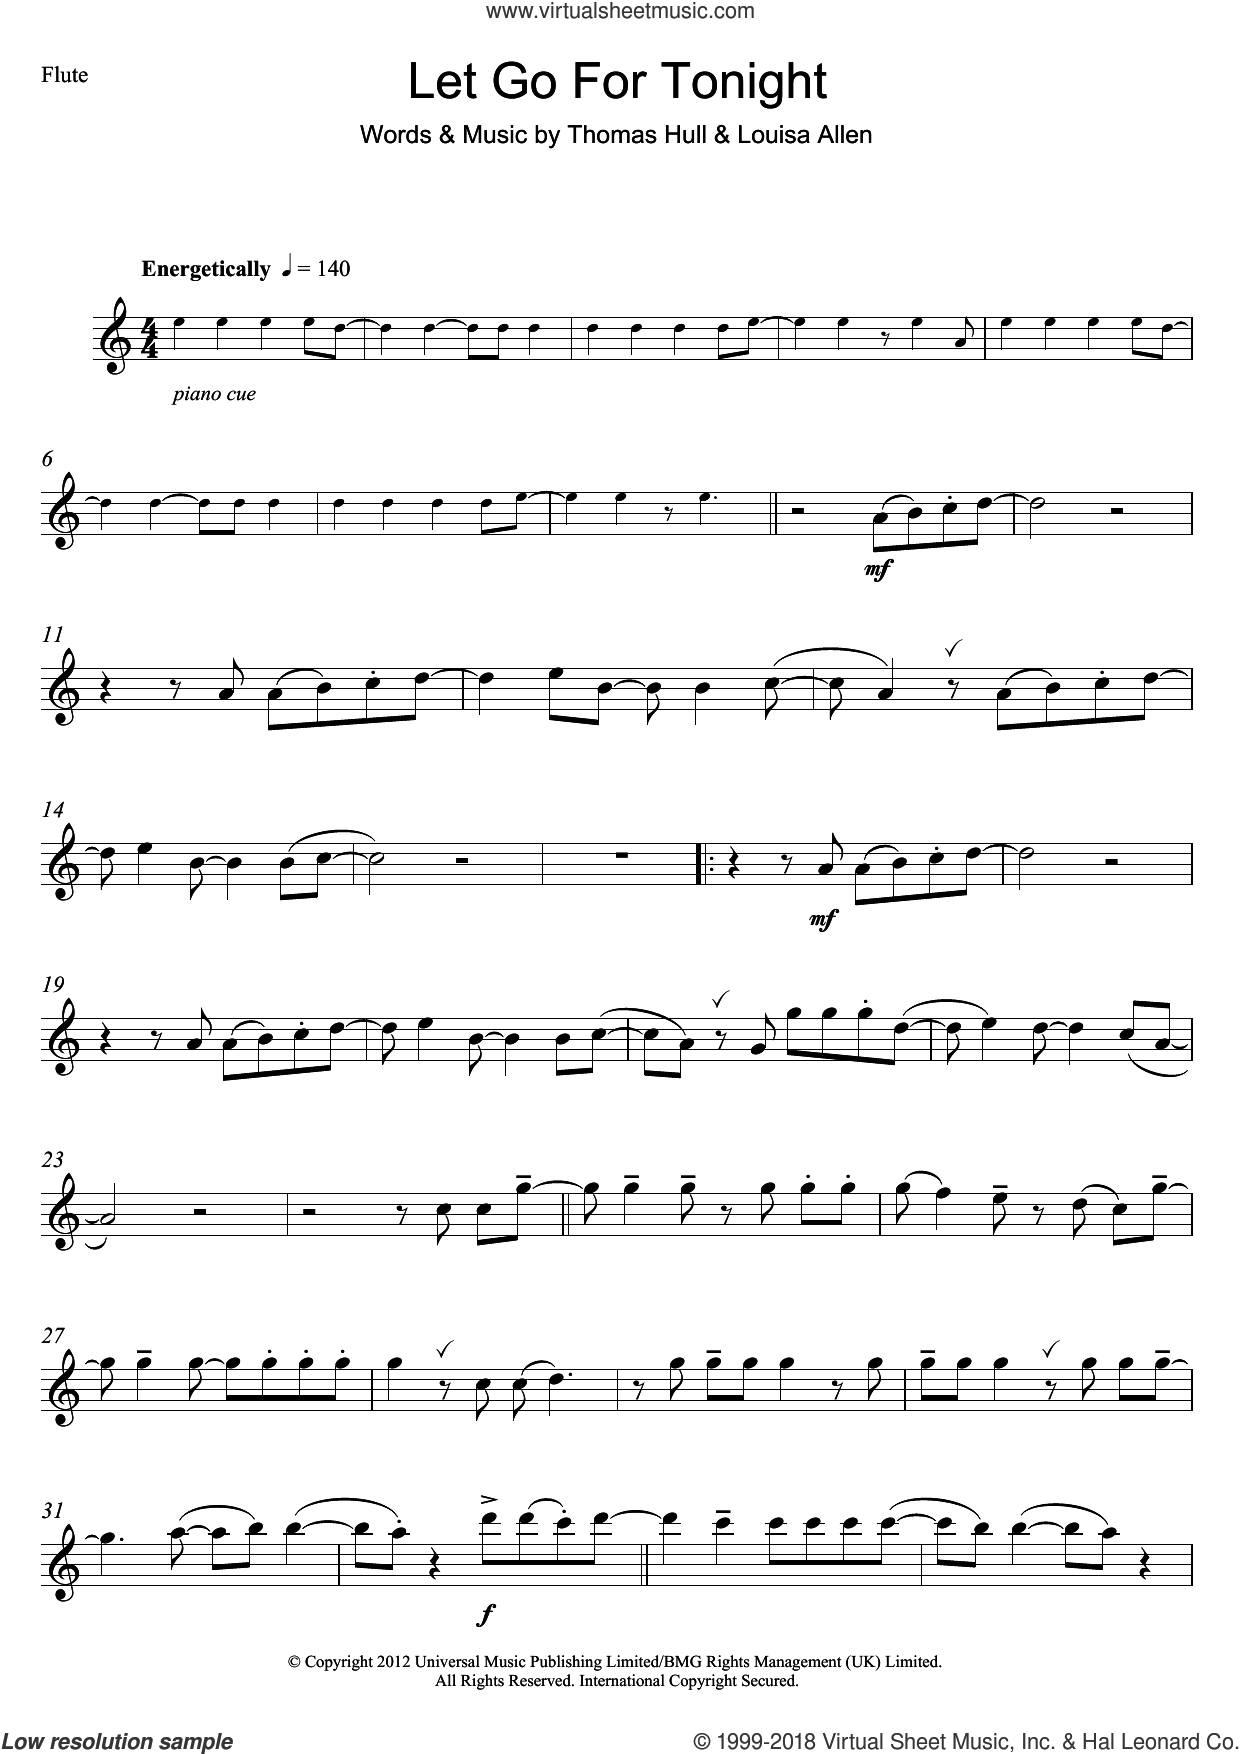 Let Go For Tonight sheet music for flute solo by Foxes, Louisa Allen and Tom Hull, intermediate skill level